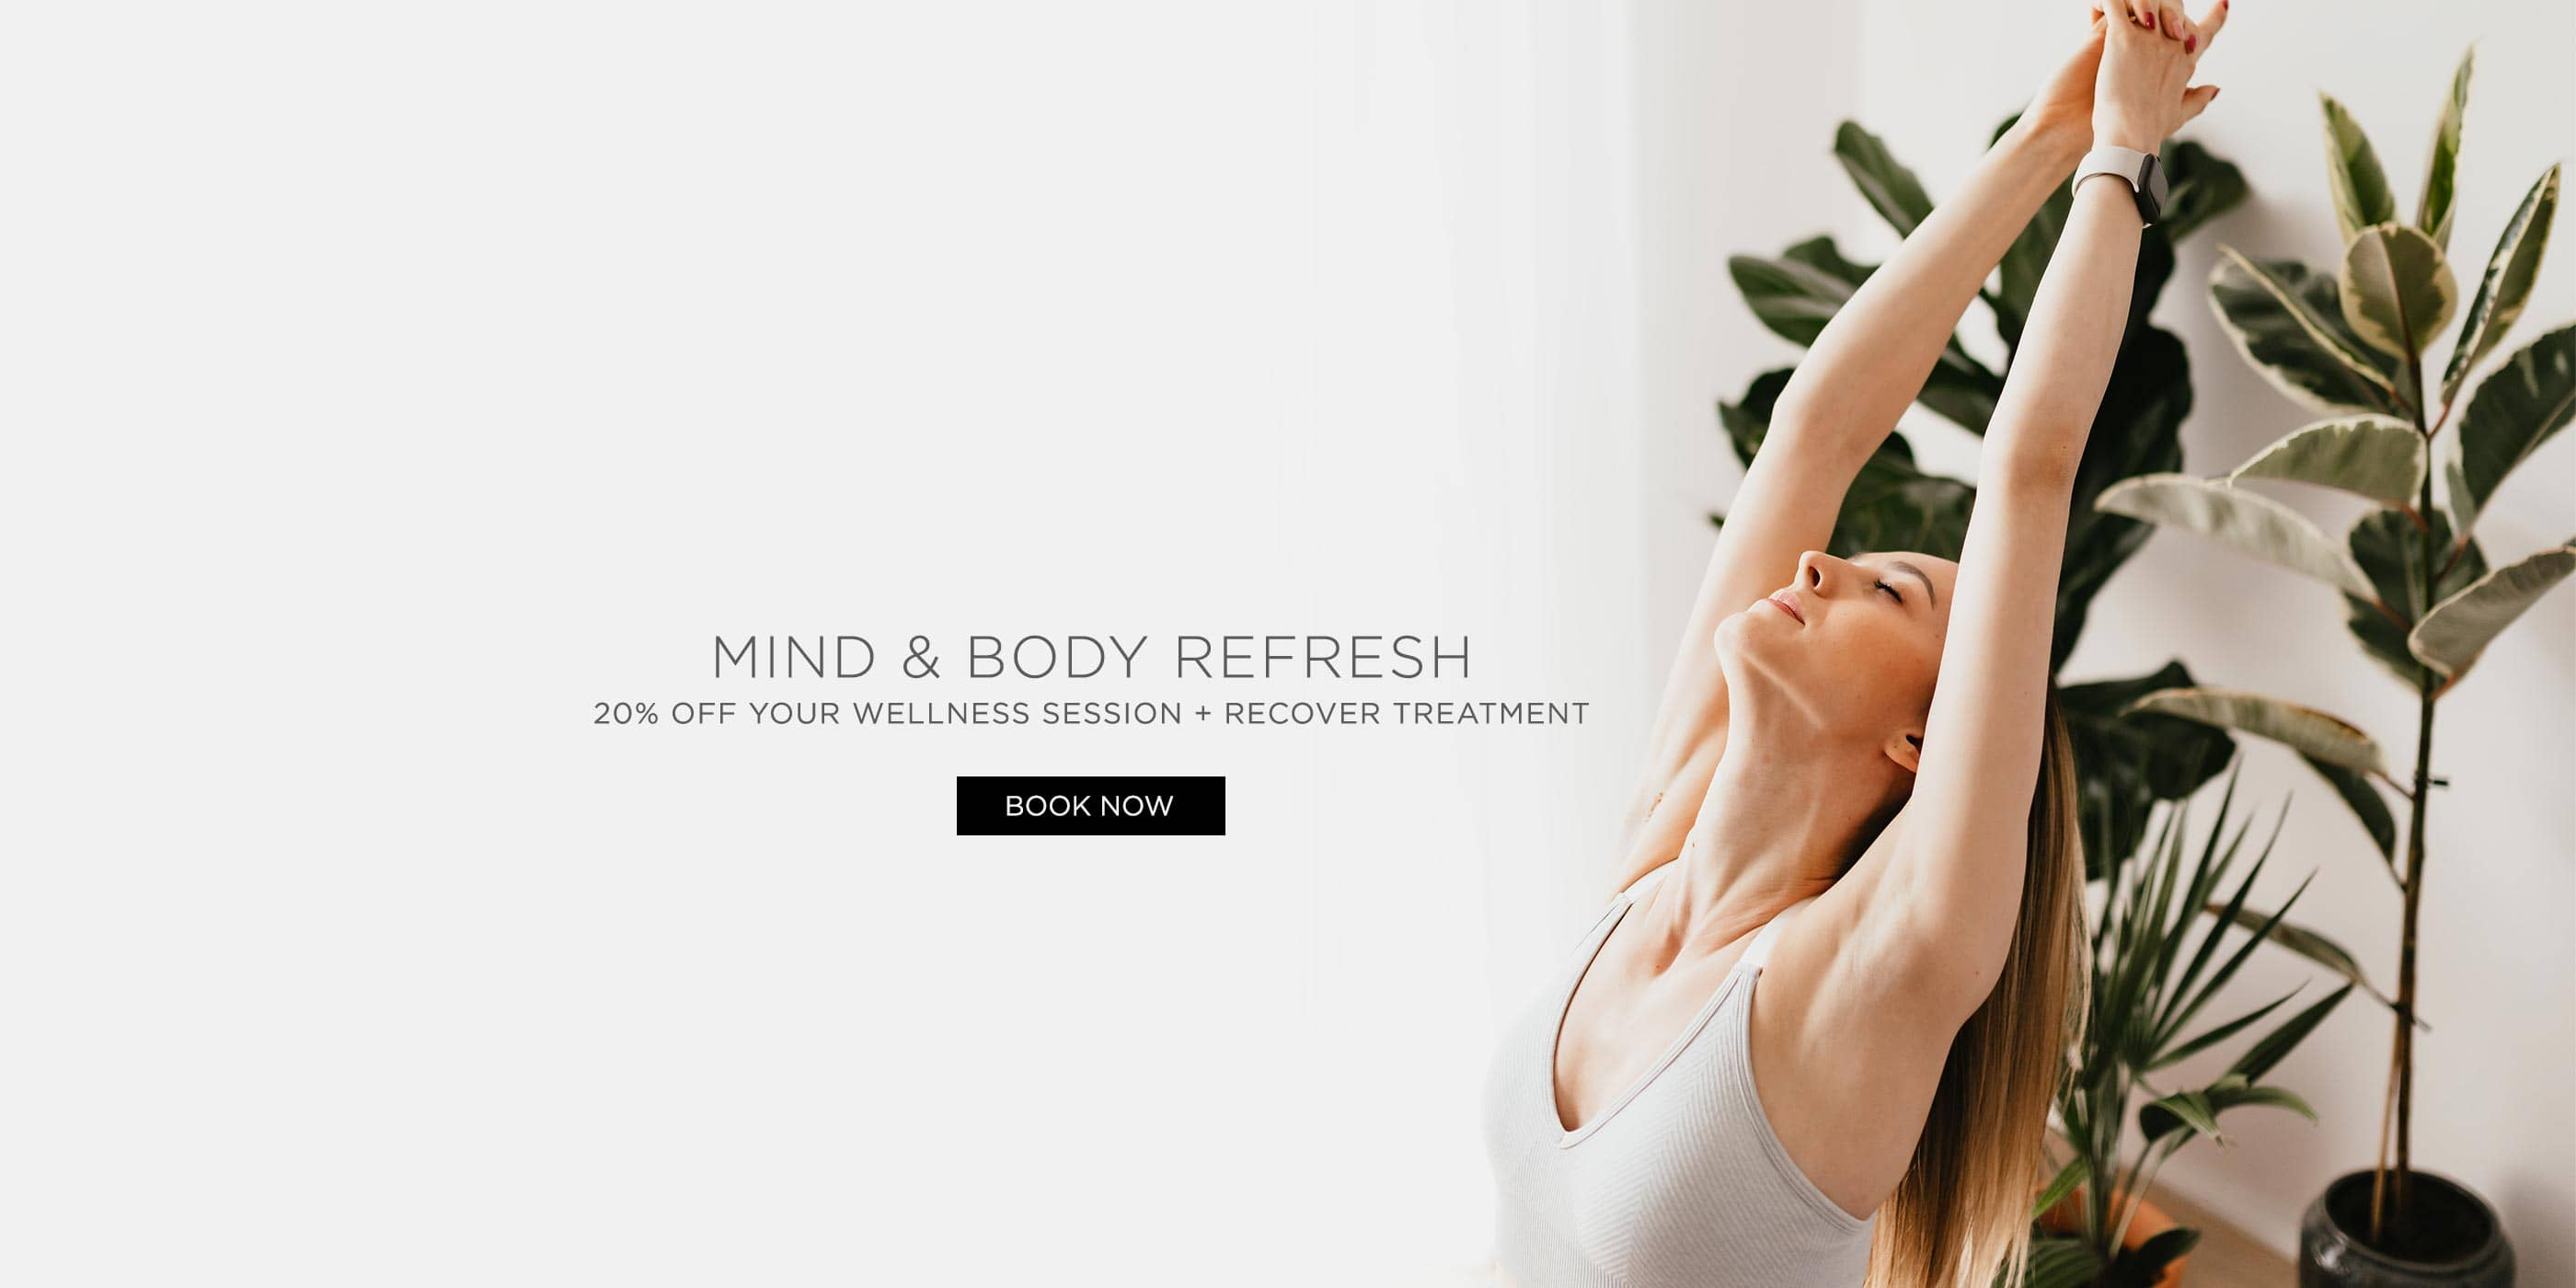 Mind & Body Refresh